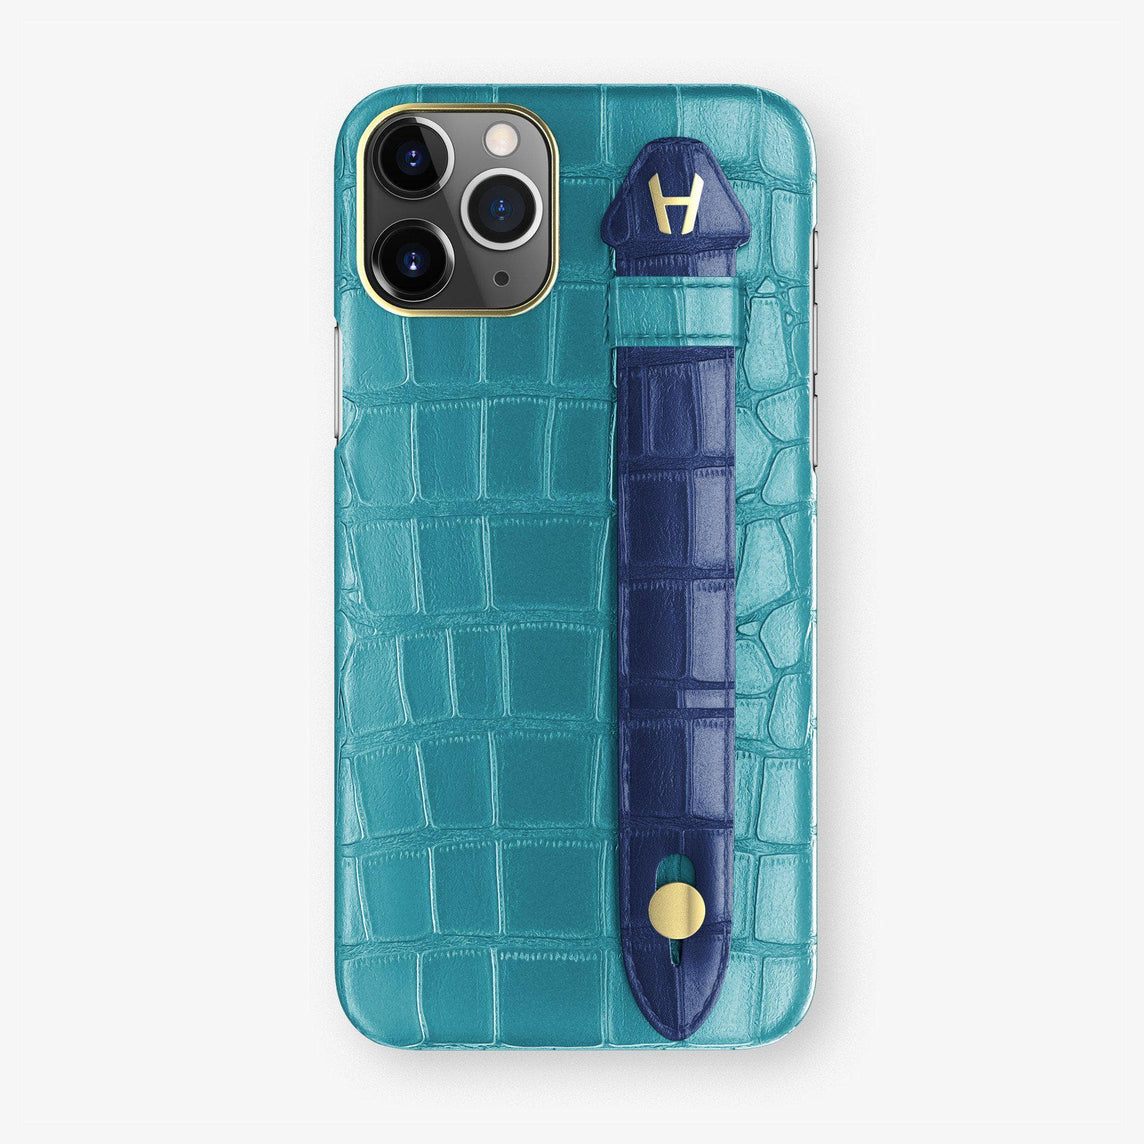 Alligator Finger Case iPhone 11 | Blue Teal/Navy Blue - Yellow Gold